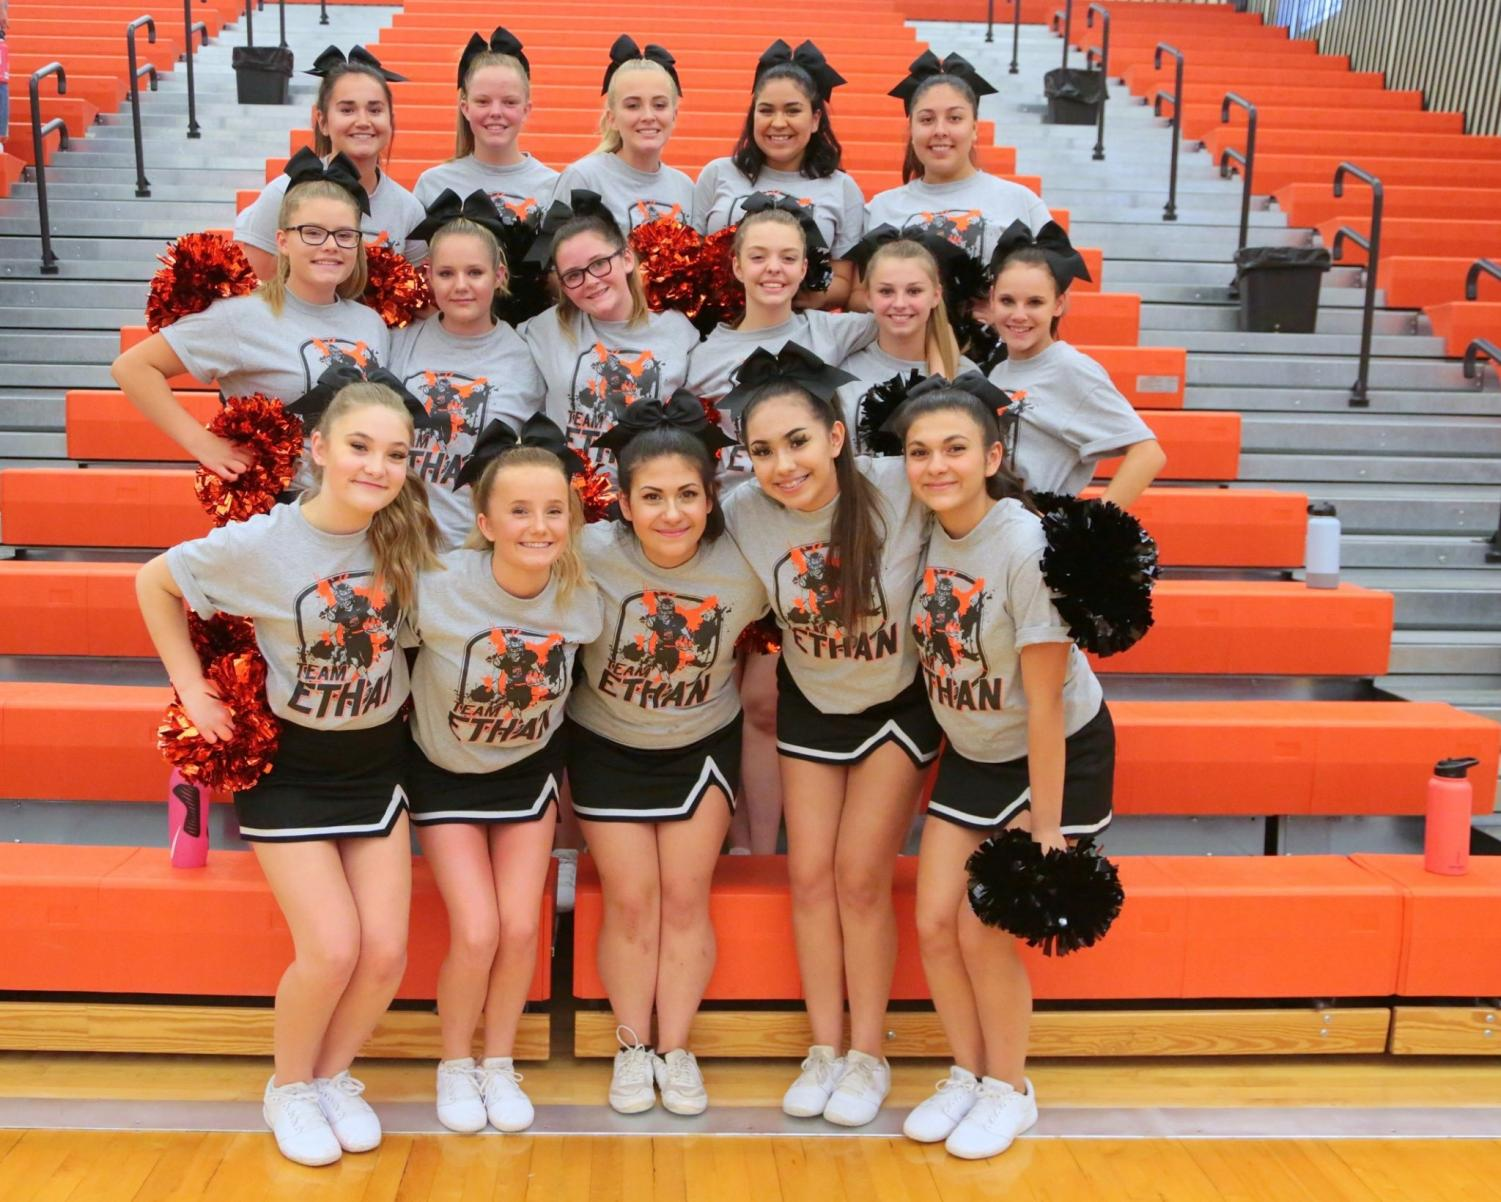 Powell High School cheerleaders cheer on the Lady Panthers volleyball team during their game against the Thermopolis Bobcats on Sep. 12.